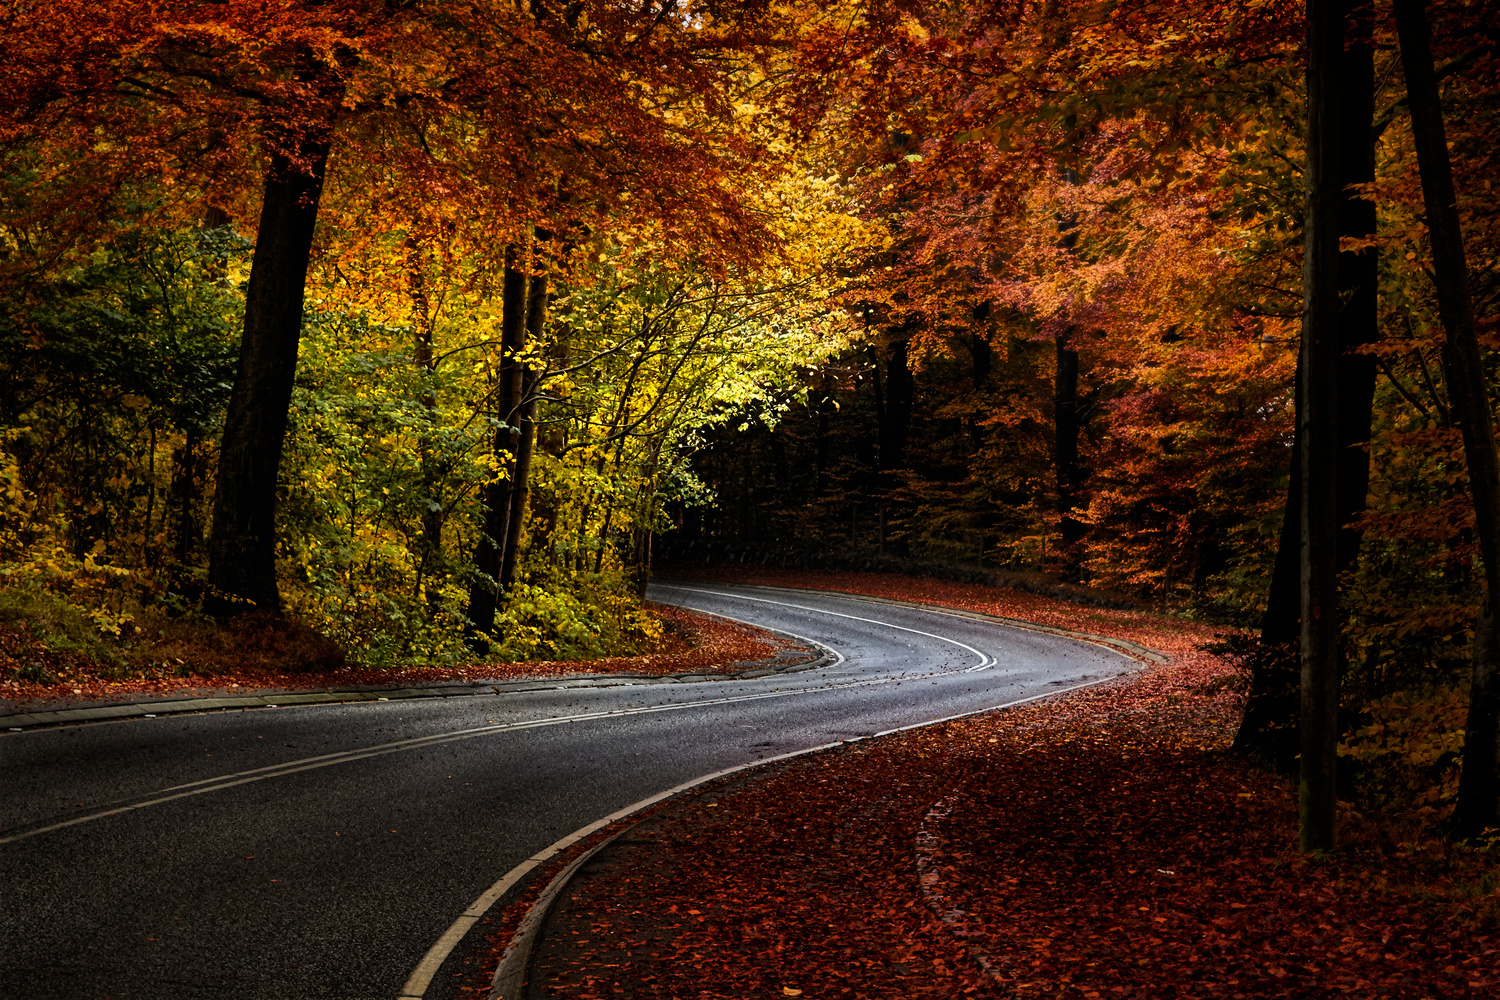 Autumn Road by Peter Strøiman